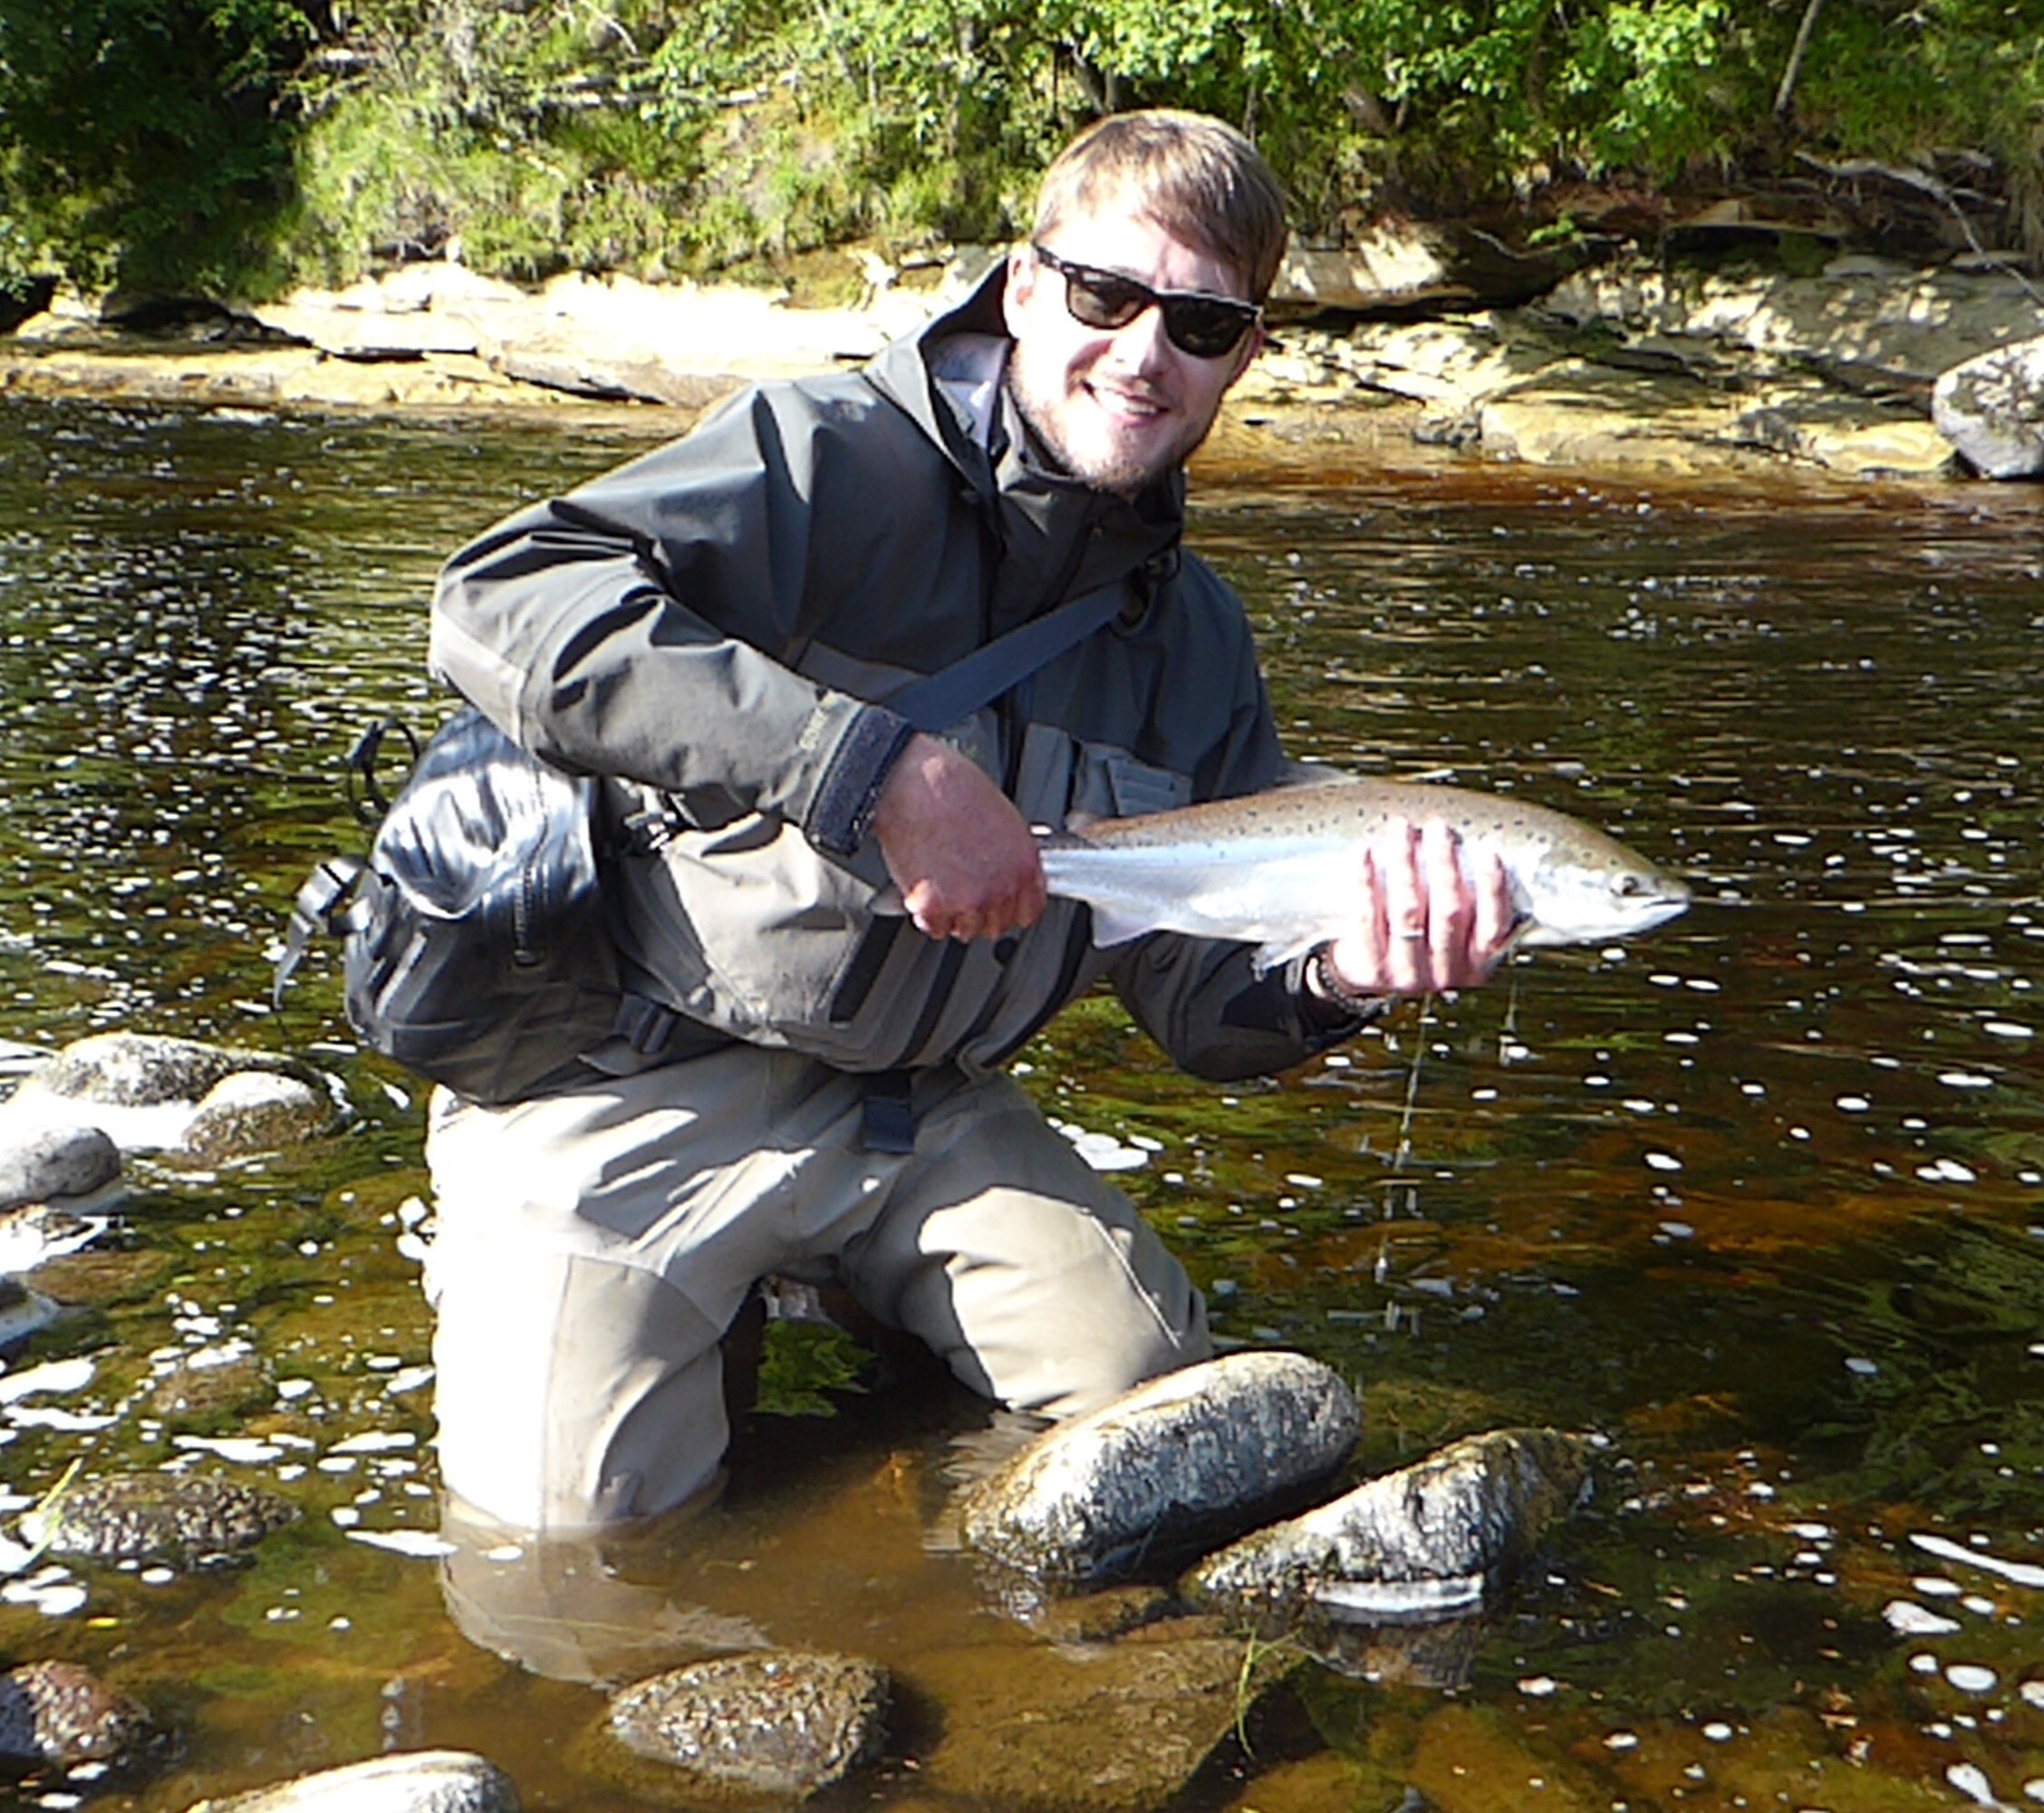 David Phillips, 4 lbs., Roan Pool, Altyre Estate, River Findhorn